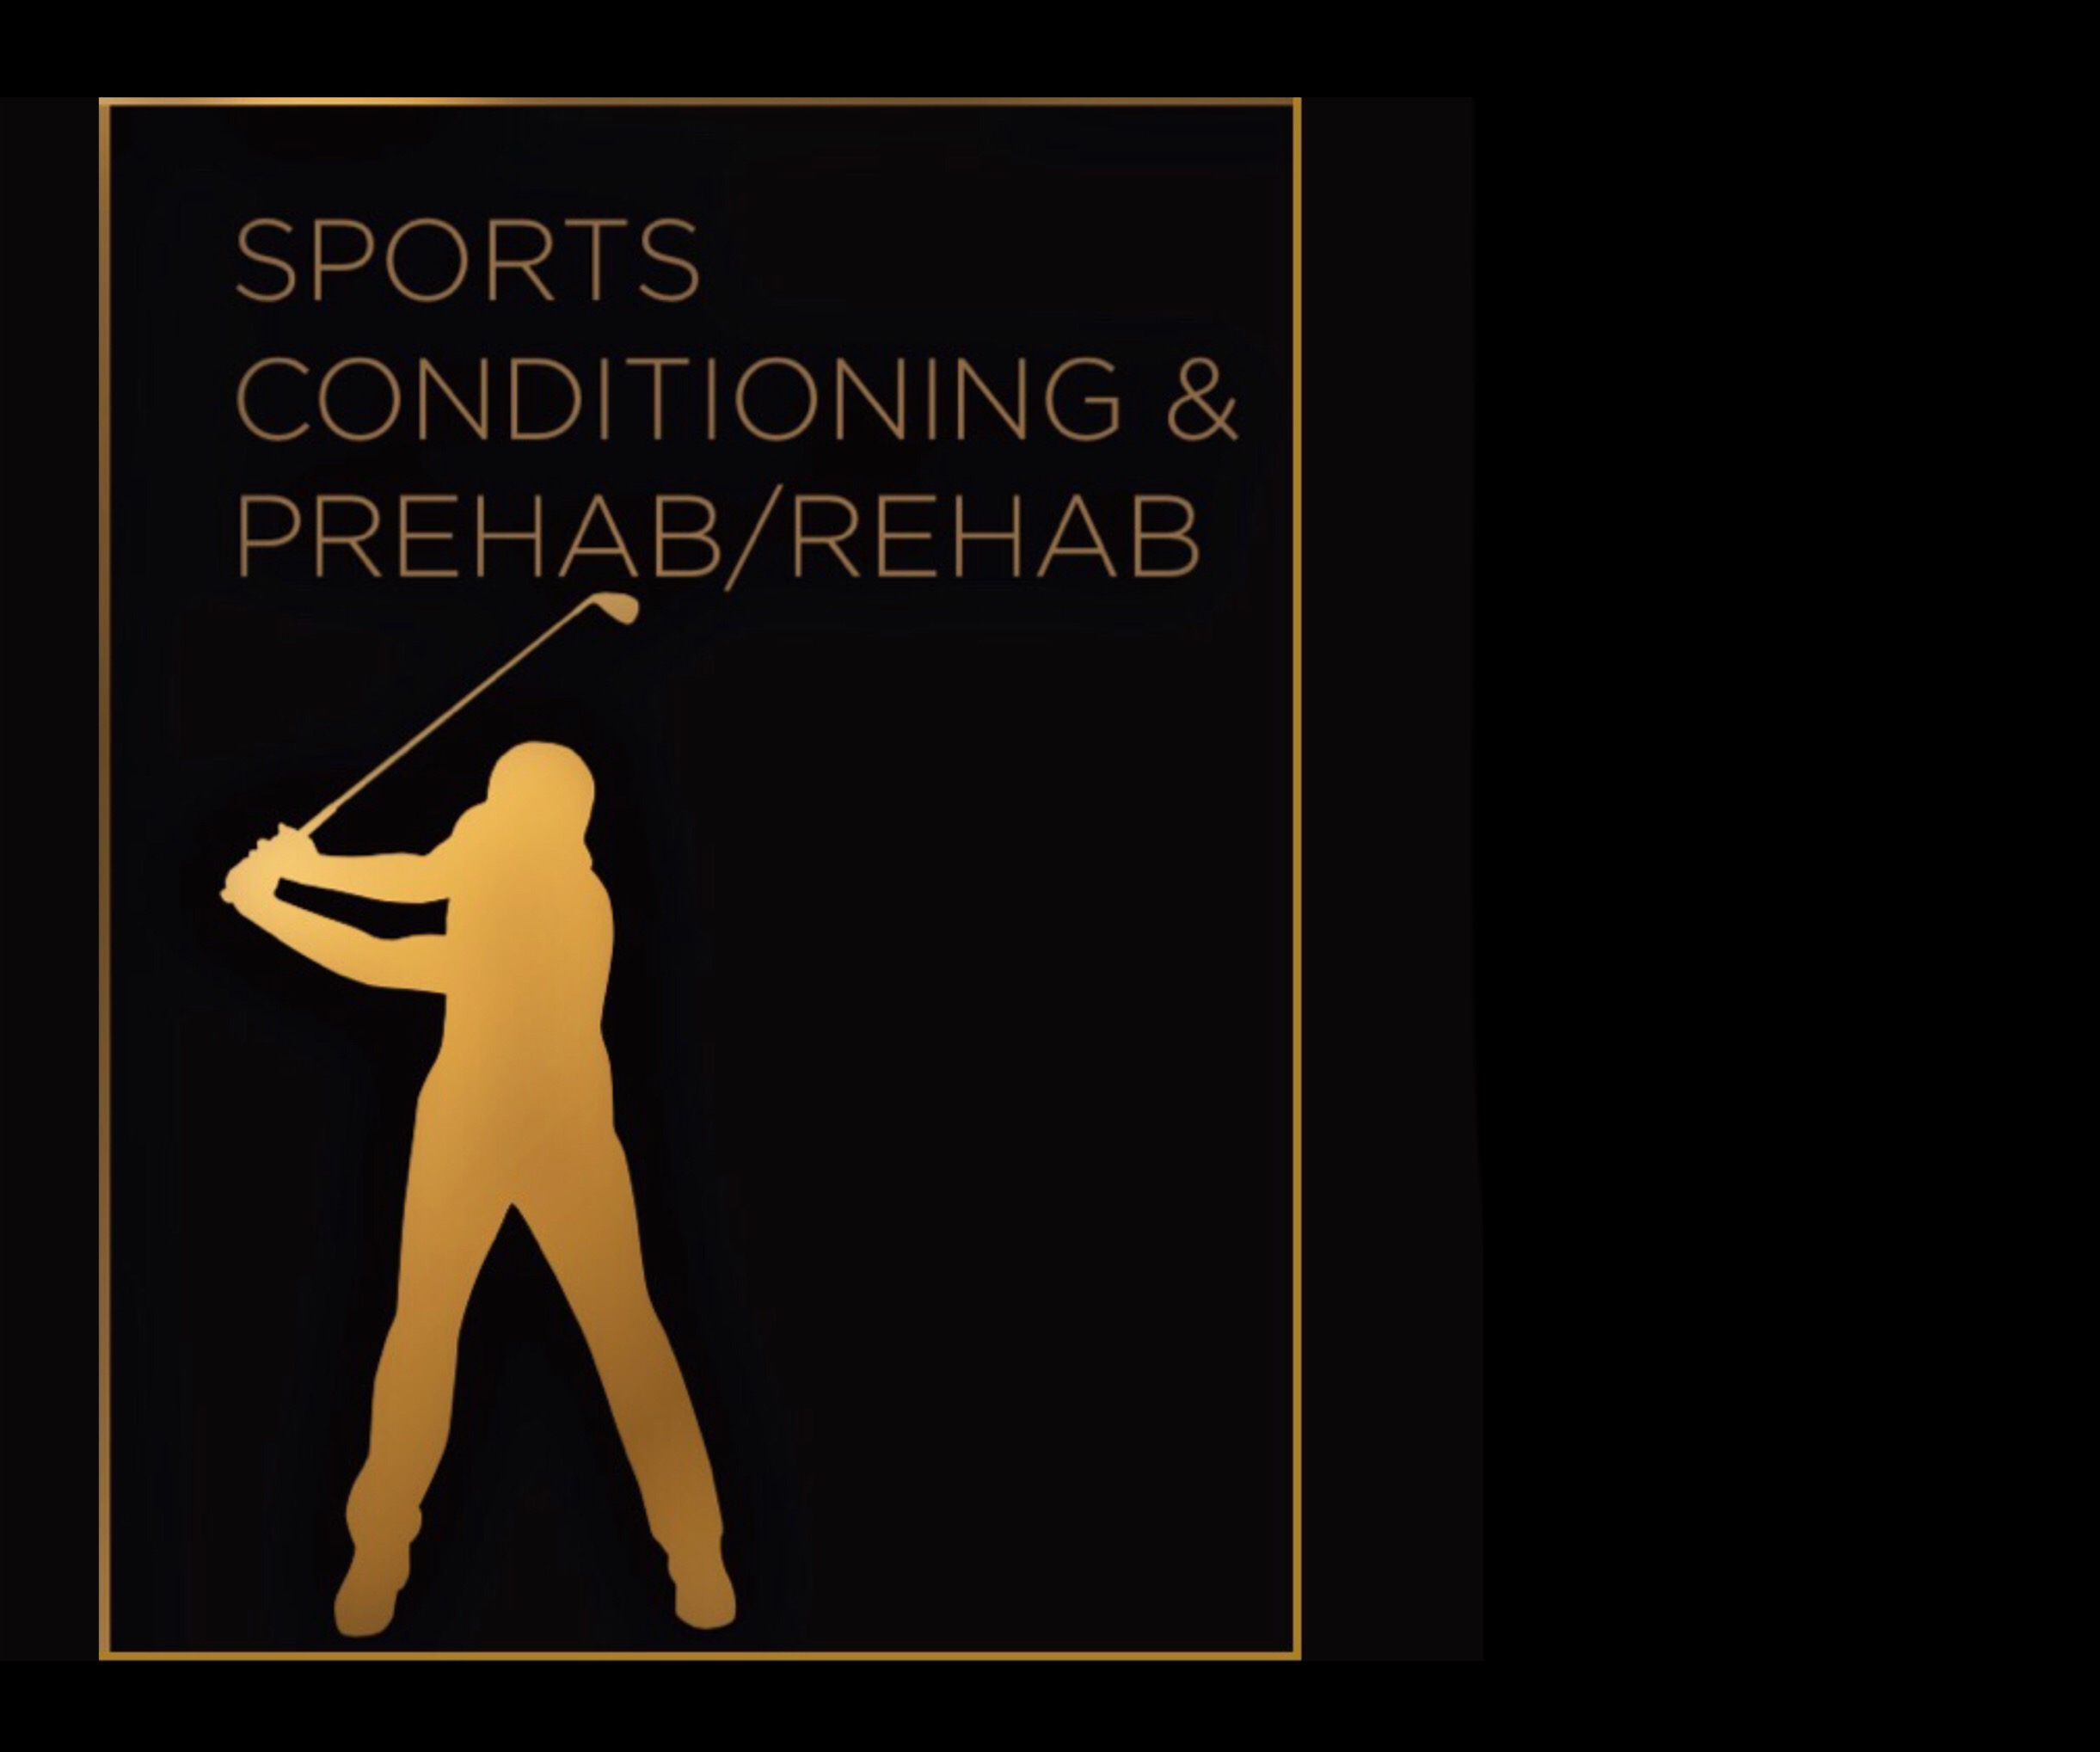 OPTIMIZING PERFORMANCE - Our elite personal trainers incorporate prehab and rehab techniques into each session, regardless if you are an athlete or wanting to simply achieve longevity. Catering to enhancing performance for all types of sports, we take pride in tailoring each session for your needs.